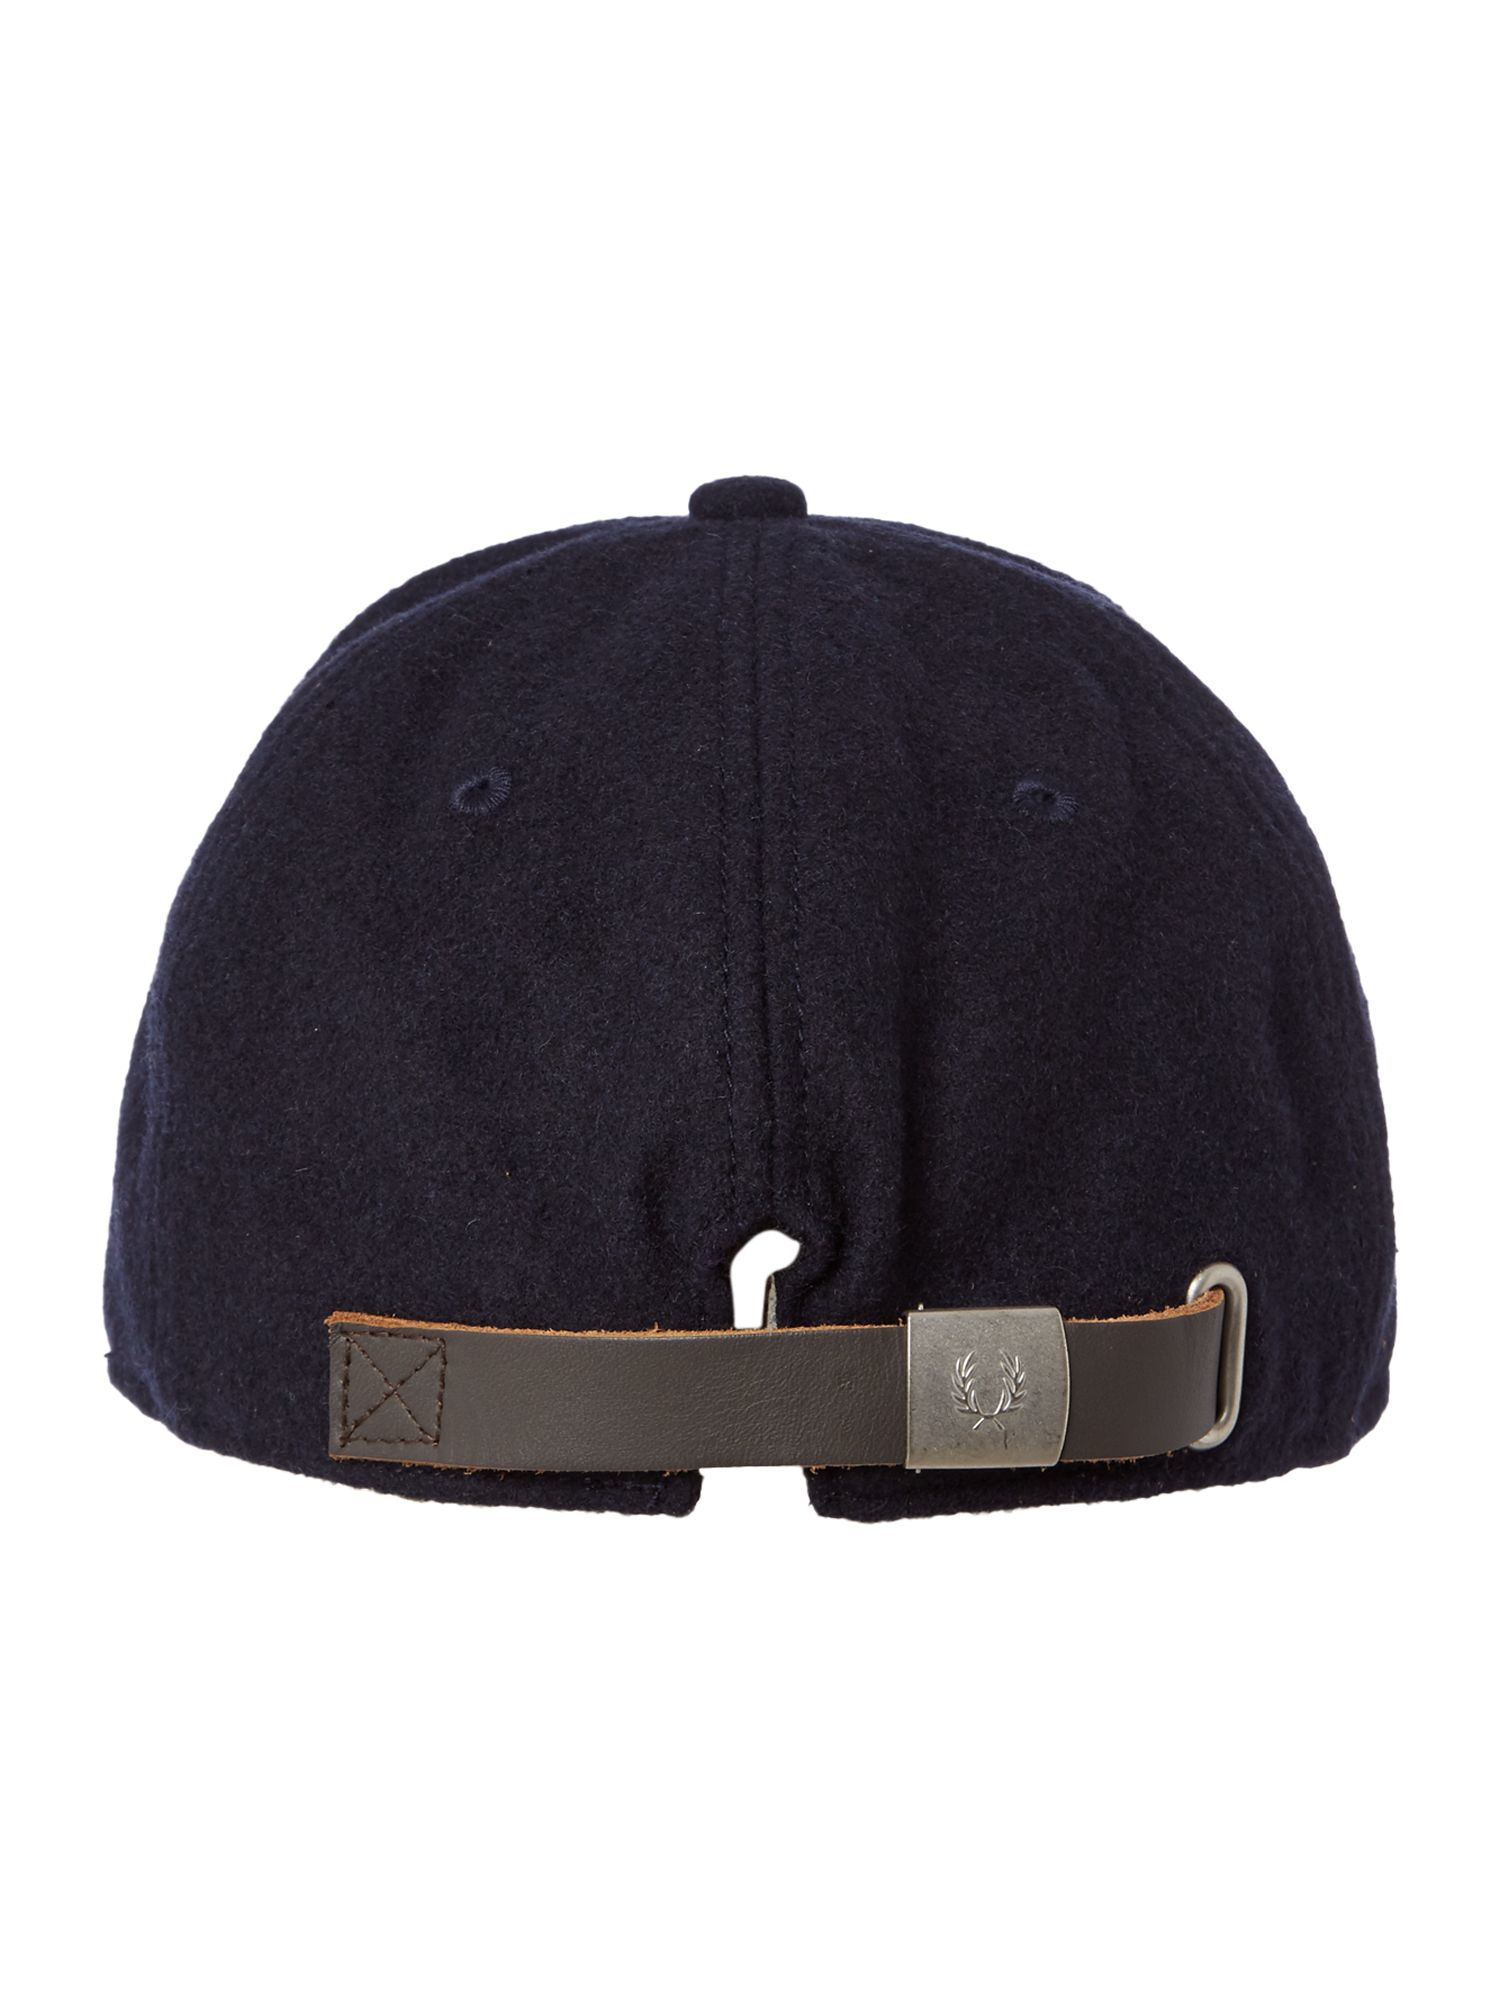 fred perry baseball cap in blue for men lyst. Black Bedroom Furniture Sets. Home Design Ideas